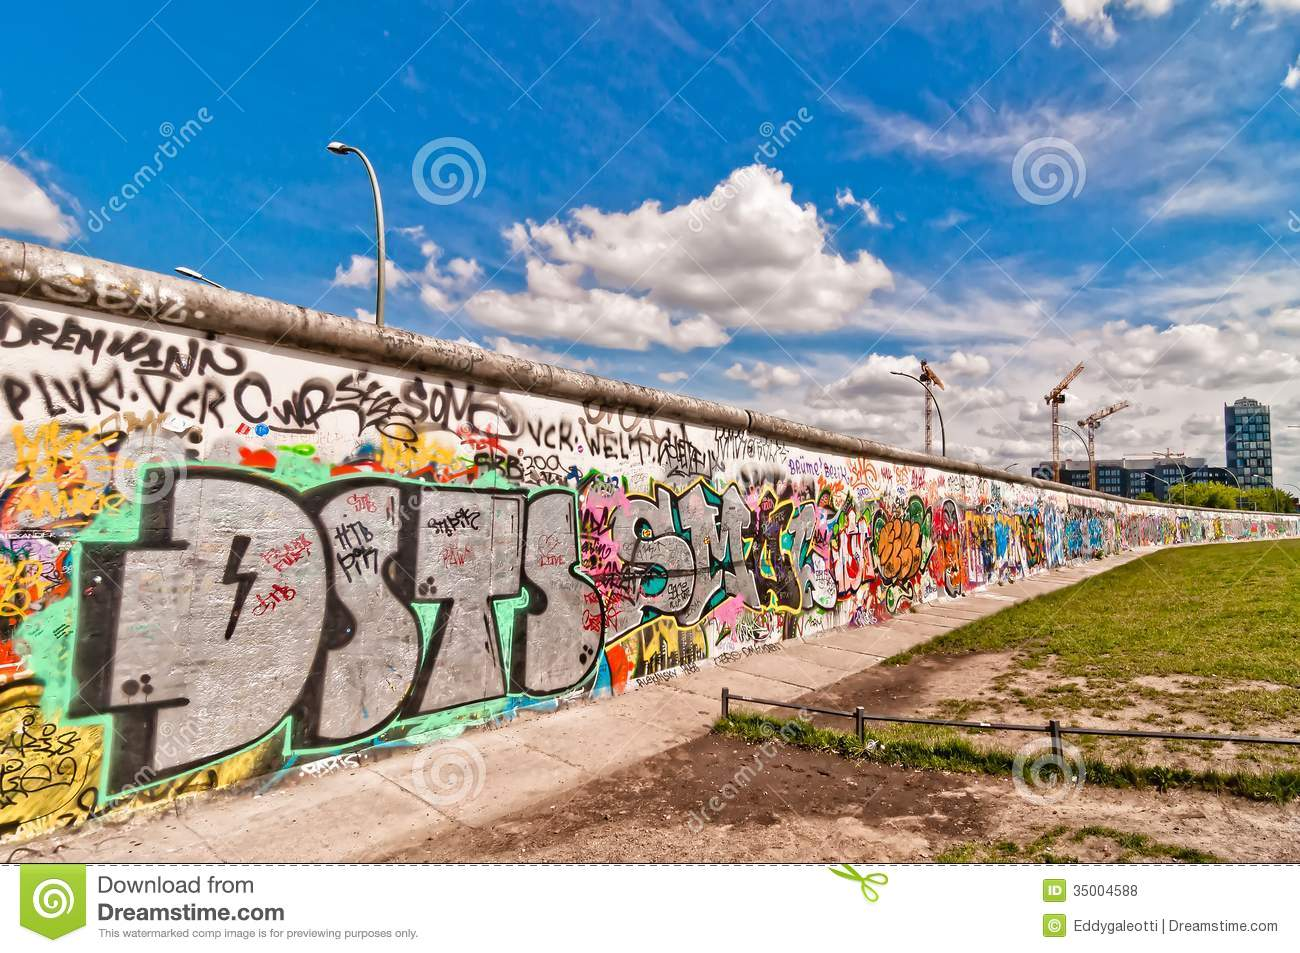 Berlin wall clipart.